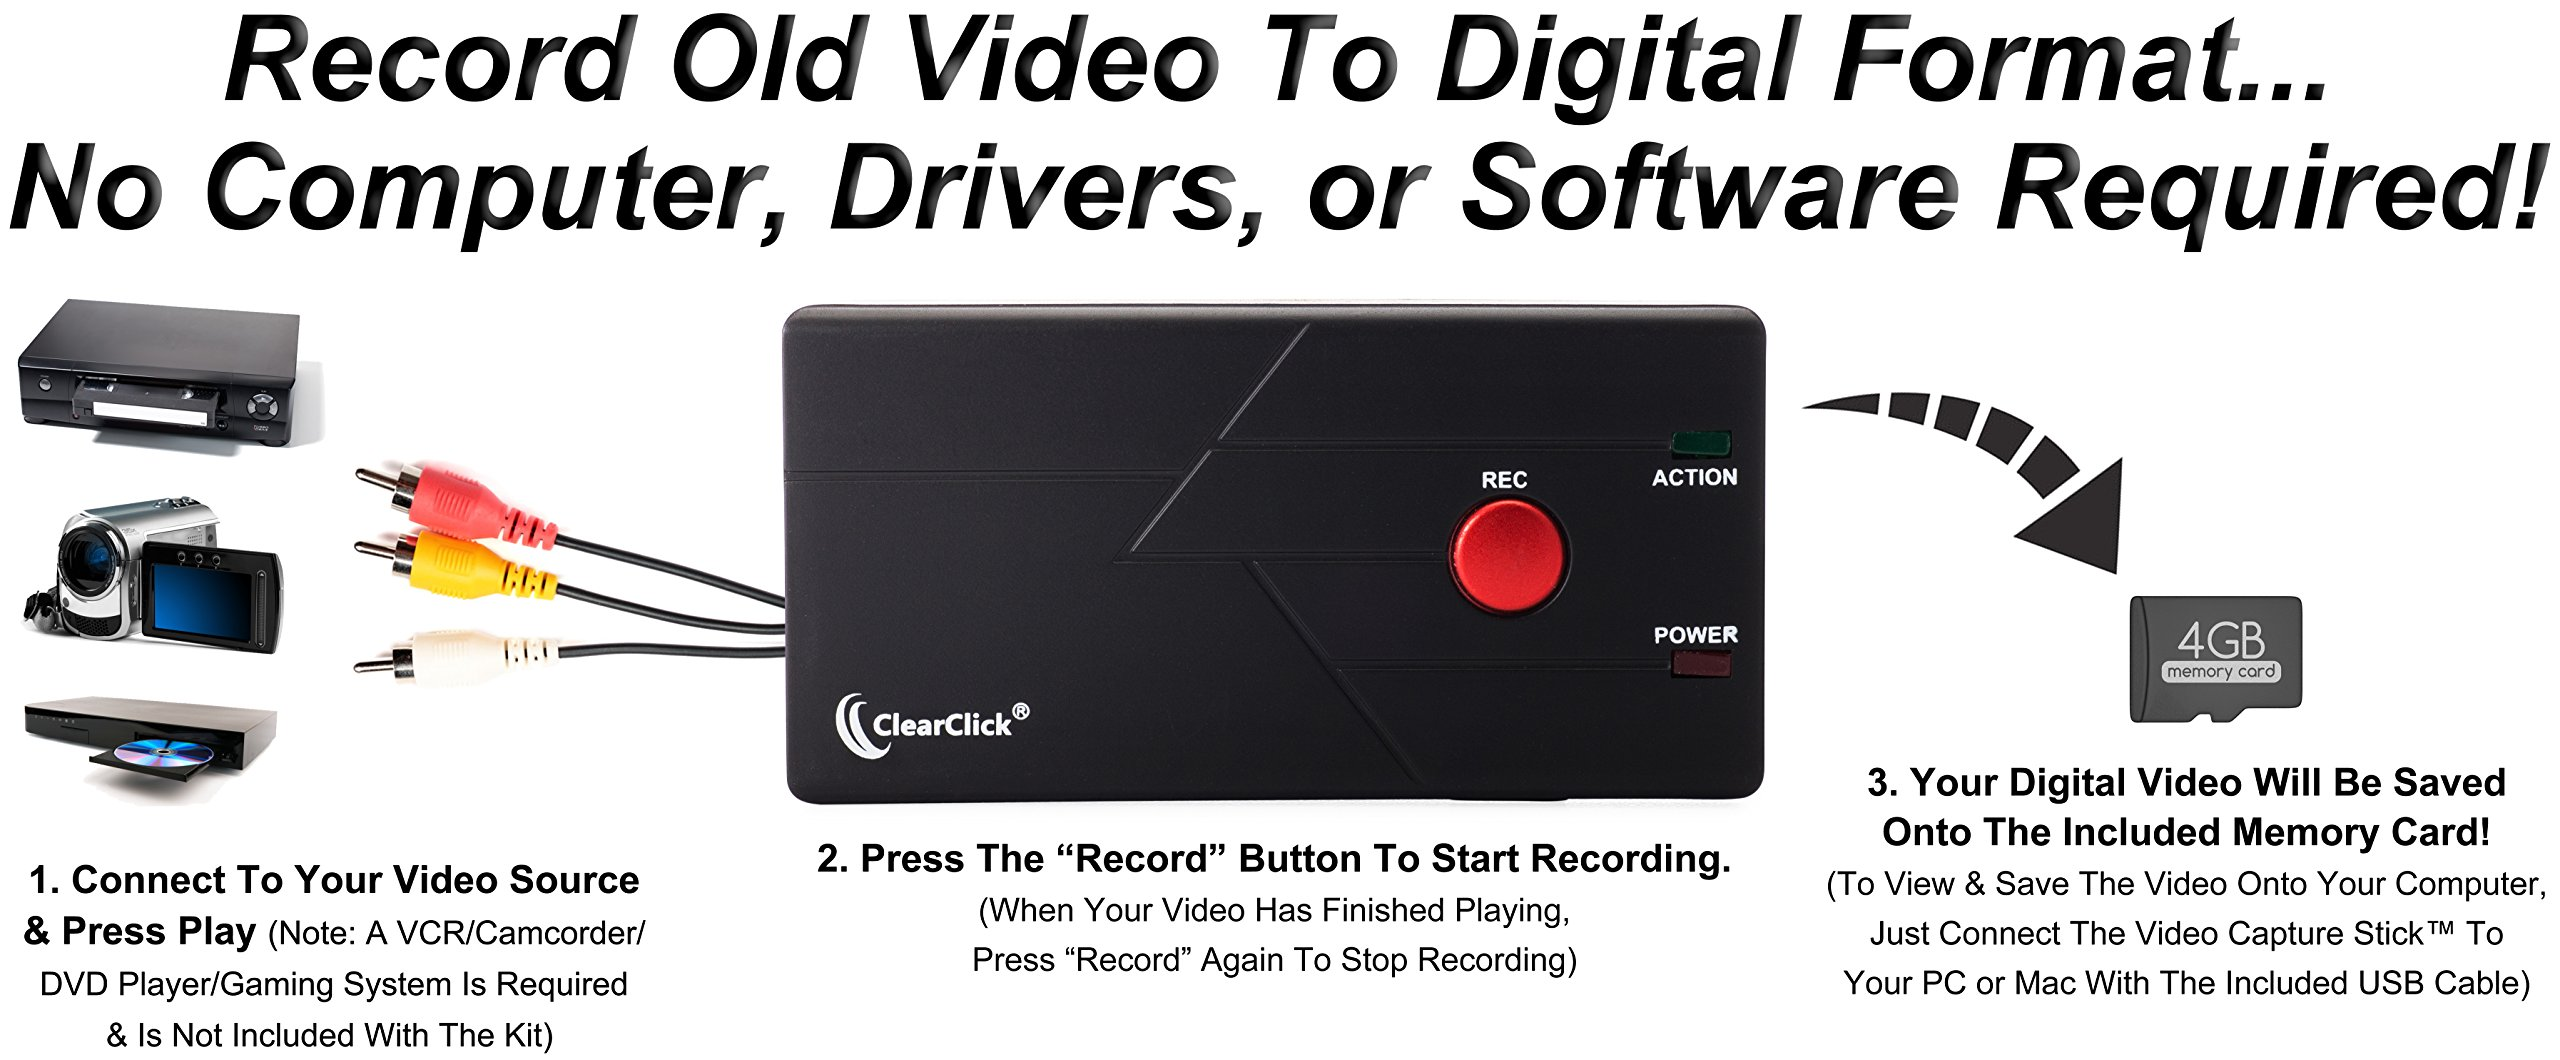 ClearClick Video Capture Stick - USB Video Grabber Device To Record From VCR, VHS Tapes, Hi8, Camcorder, DVD, More by ClearClick (Image #2)